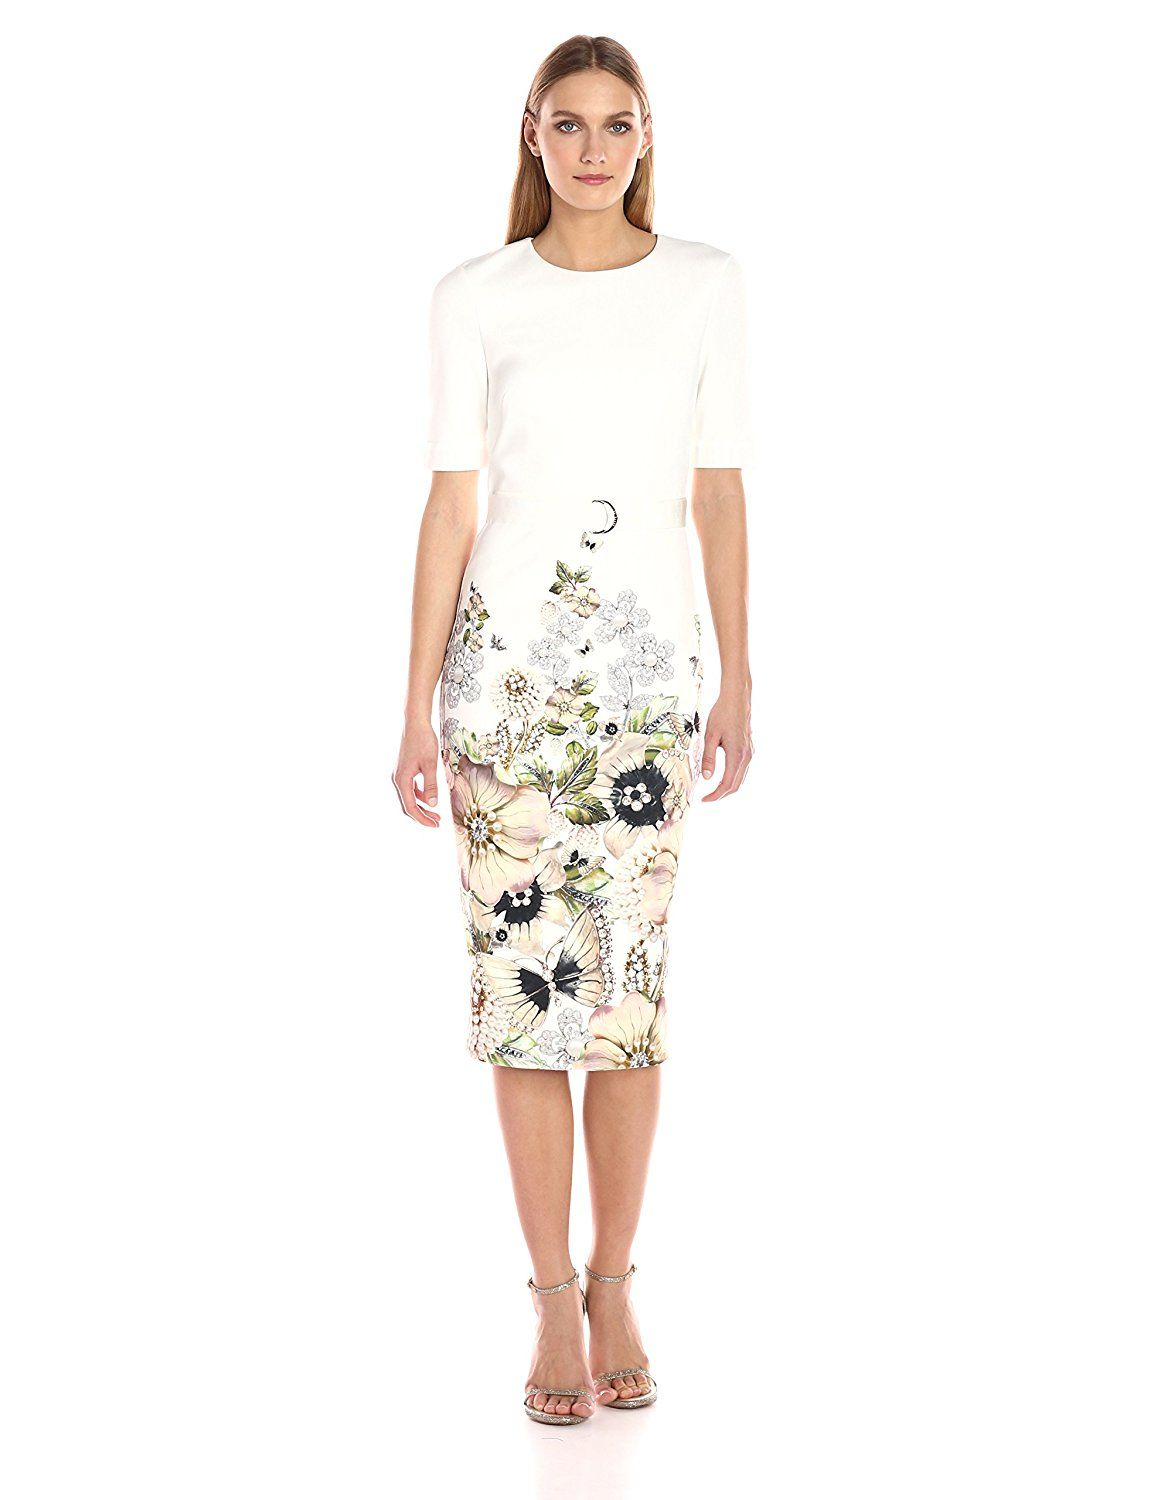 0f6529d2a50622 Amazon.com  Ted Baker Women s Layli Gem Garden Bodycon Dress  Clothing